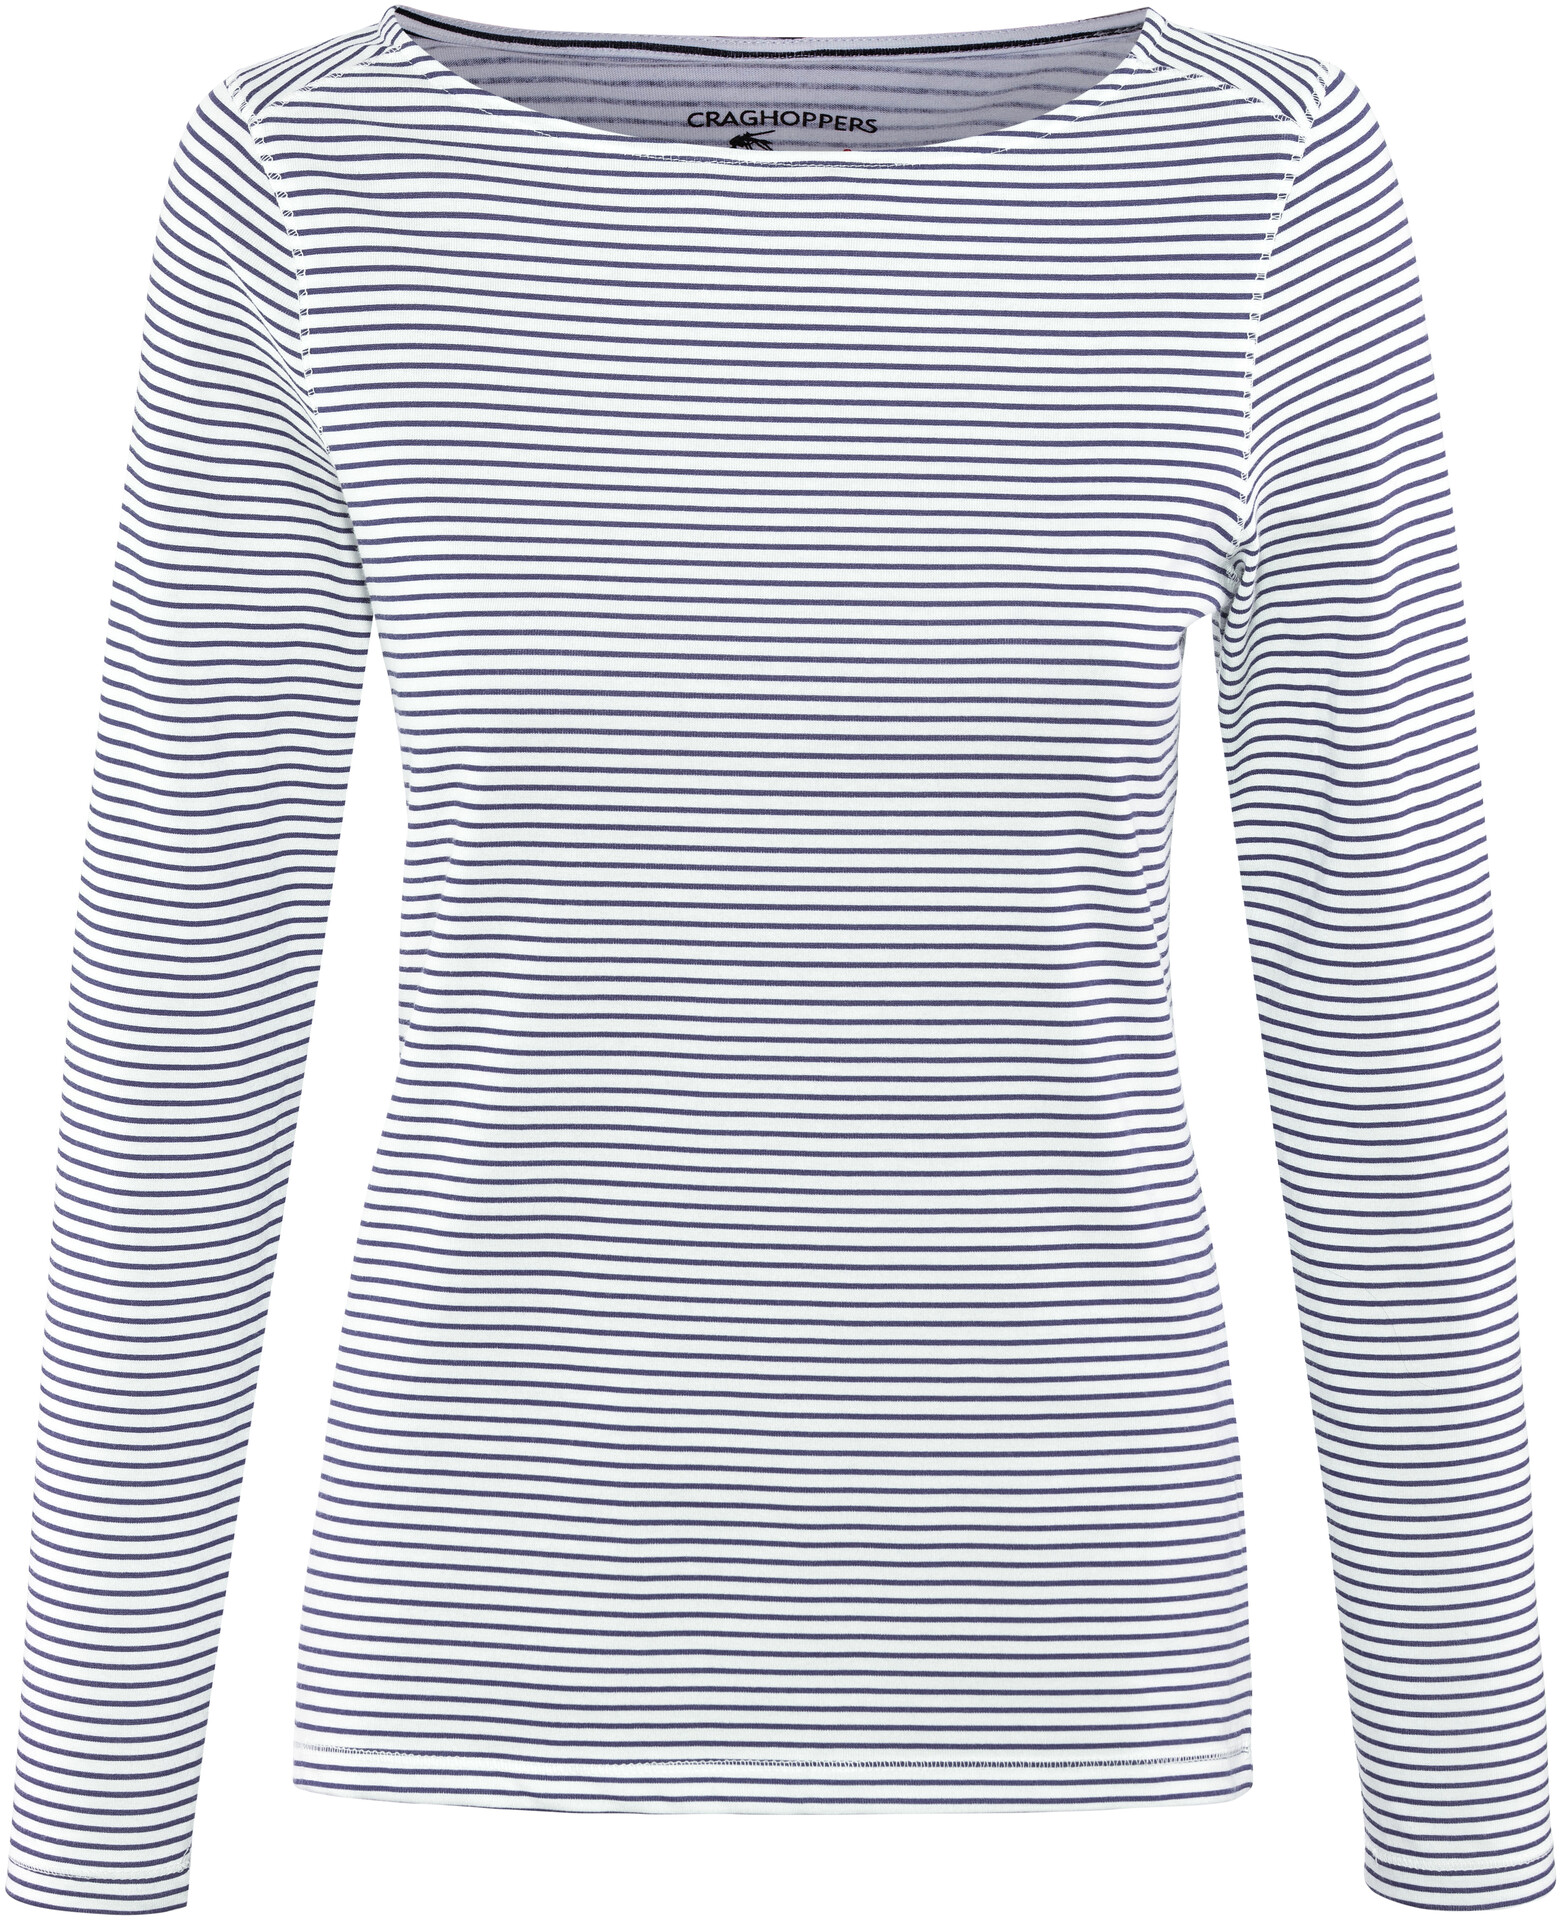 Craghoppers NosiLife Erin II Longsleeved Top Damen blue navy stripe